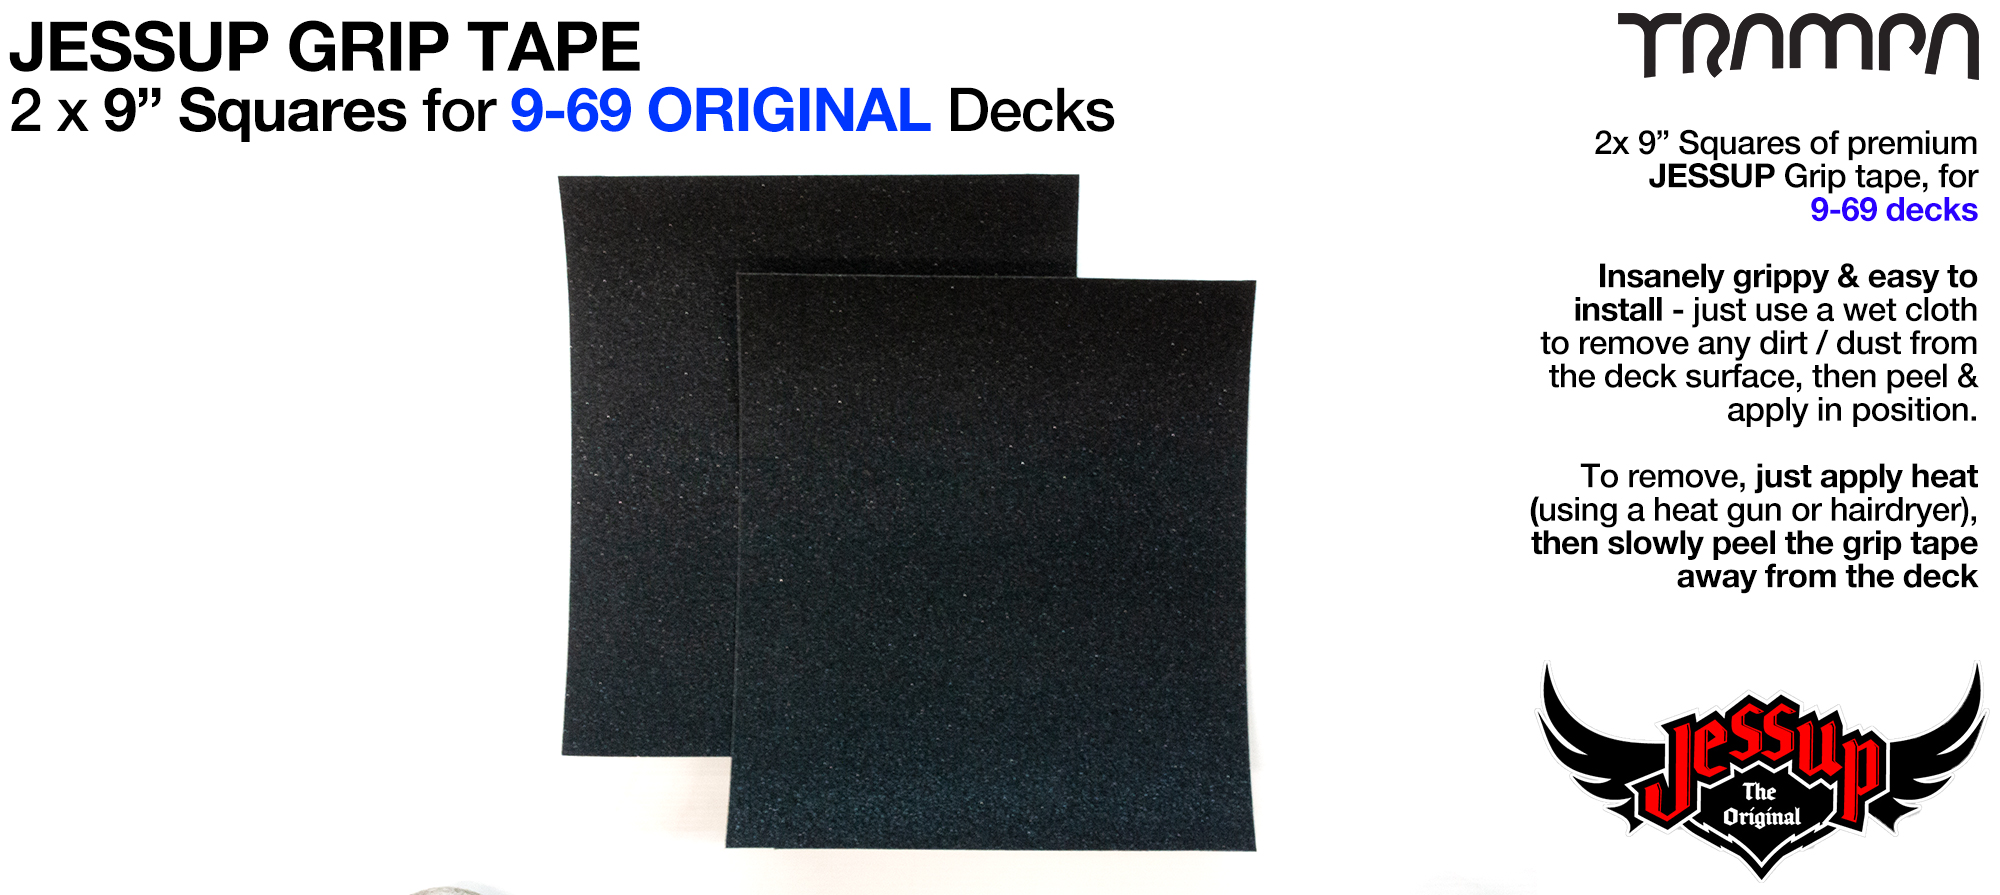 Grip tape - 2 x 9 inch squares for 9-69 Decks - Jessup